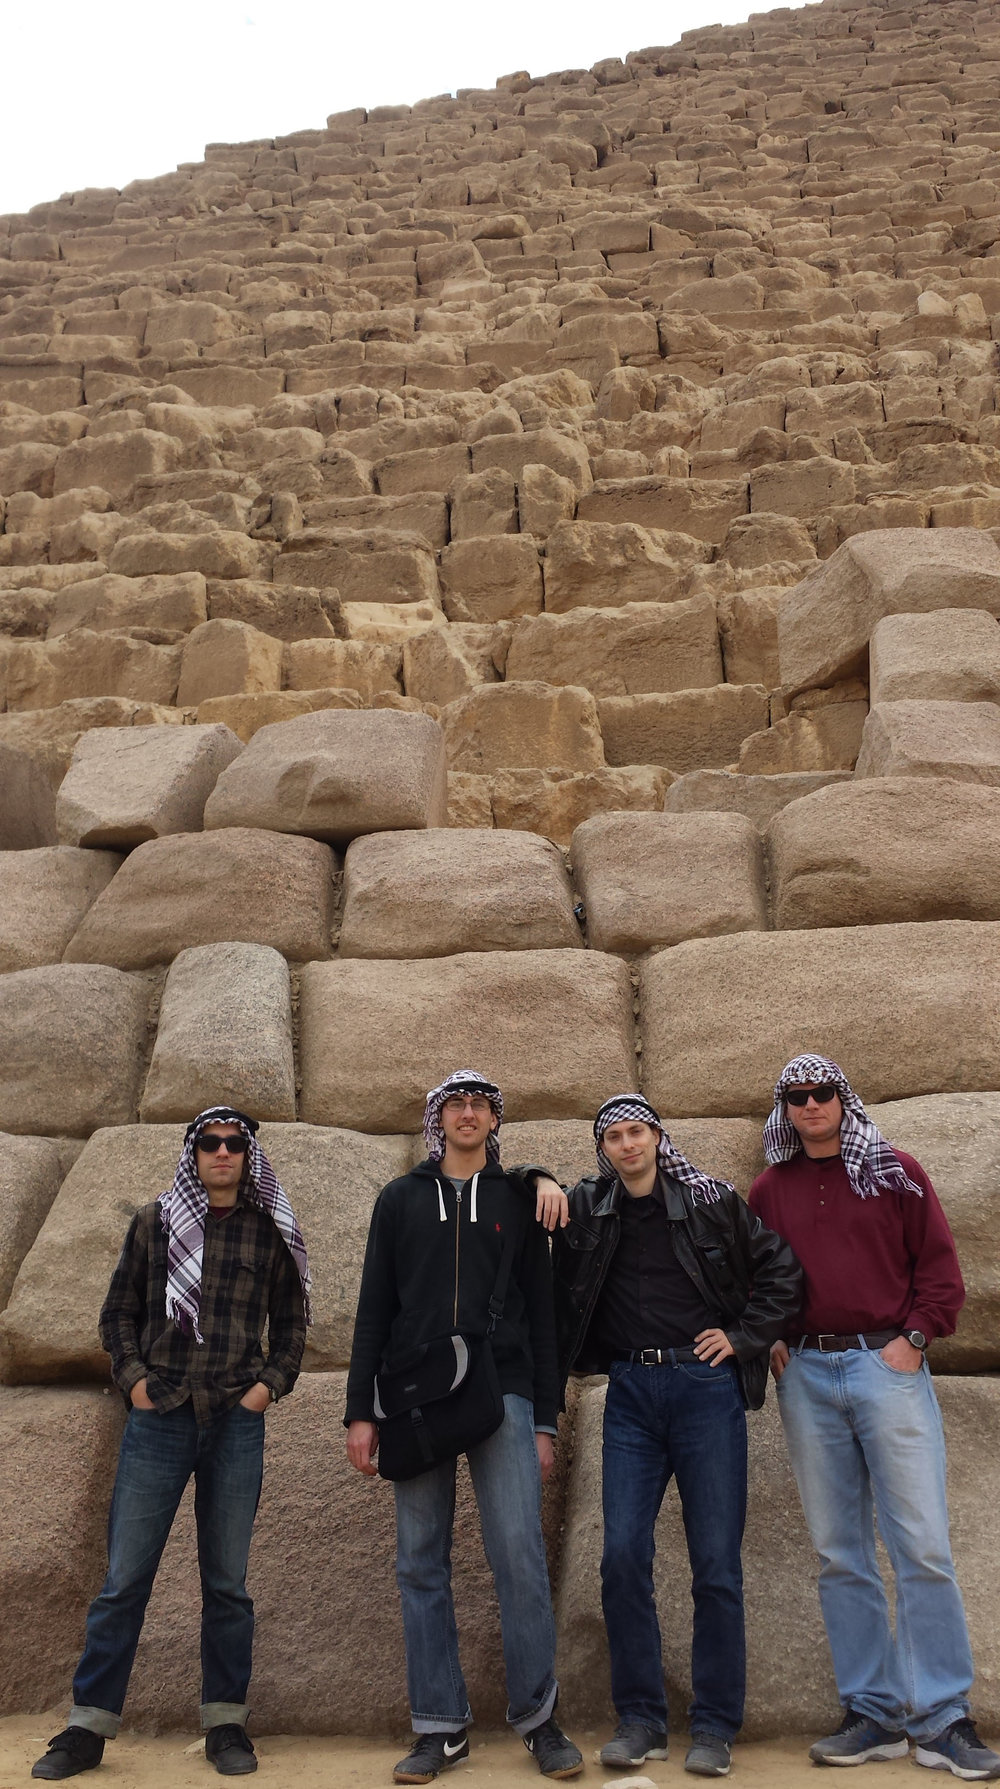 The crew posing in front of Menkaure's pyramid. From left to right: Tyler, Stanley, BJ, and Dan.